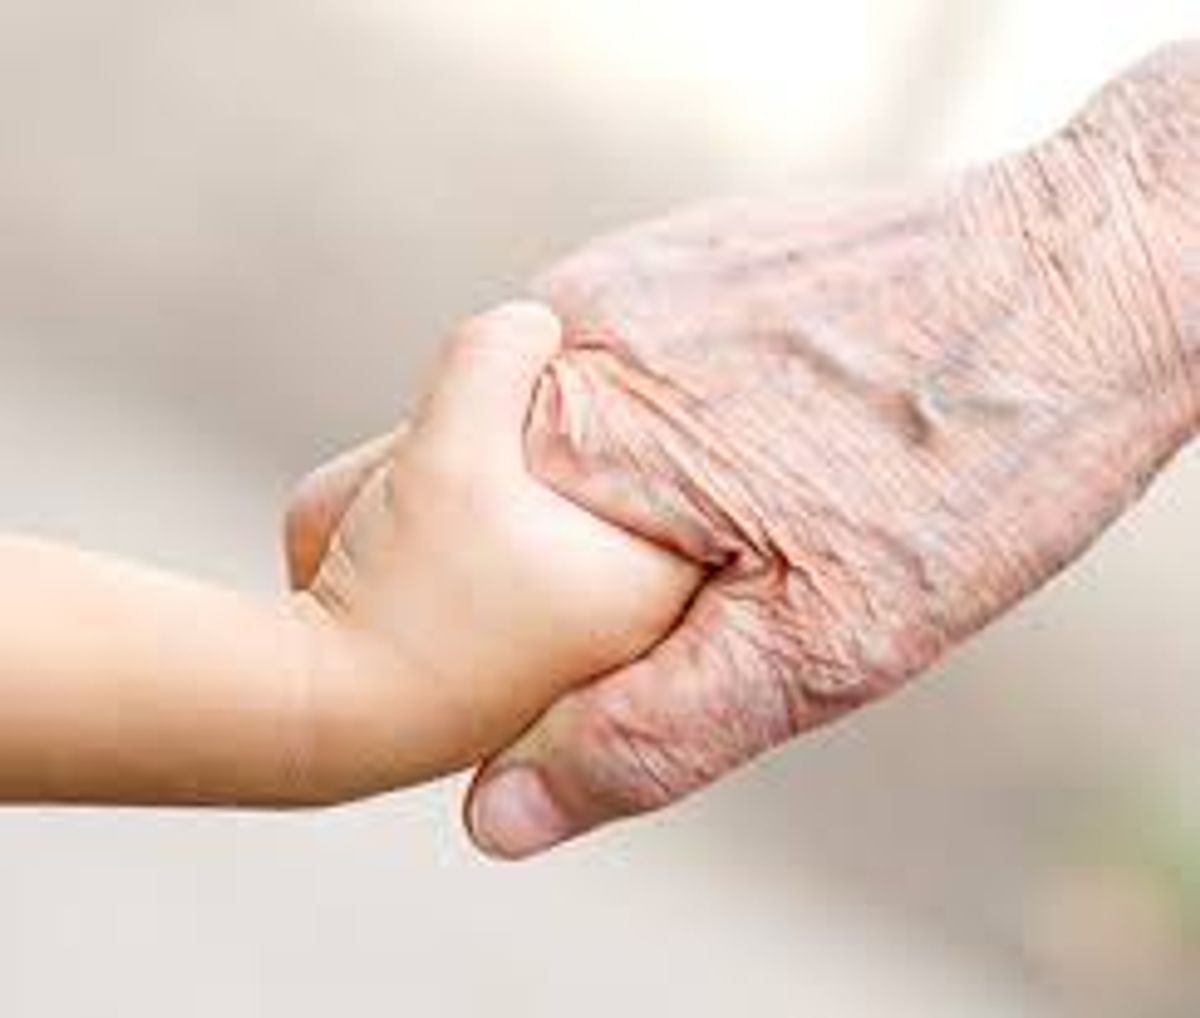 7 Reasons We Should Spend More Time With Our Grandparents